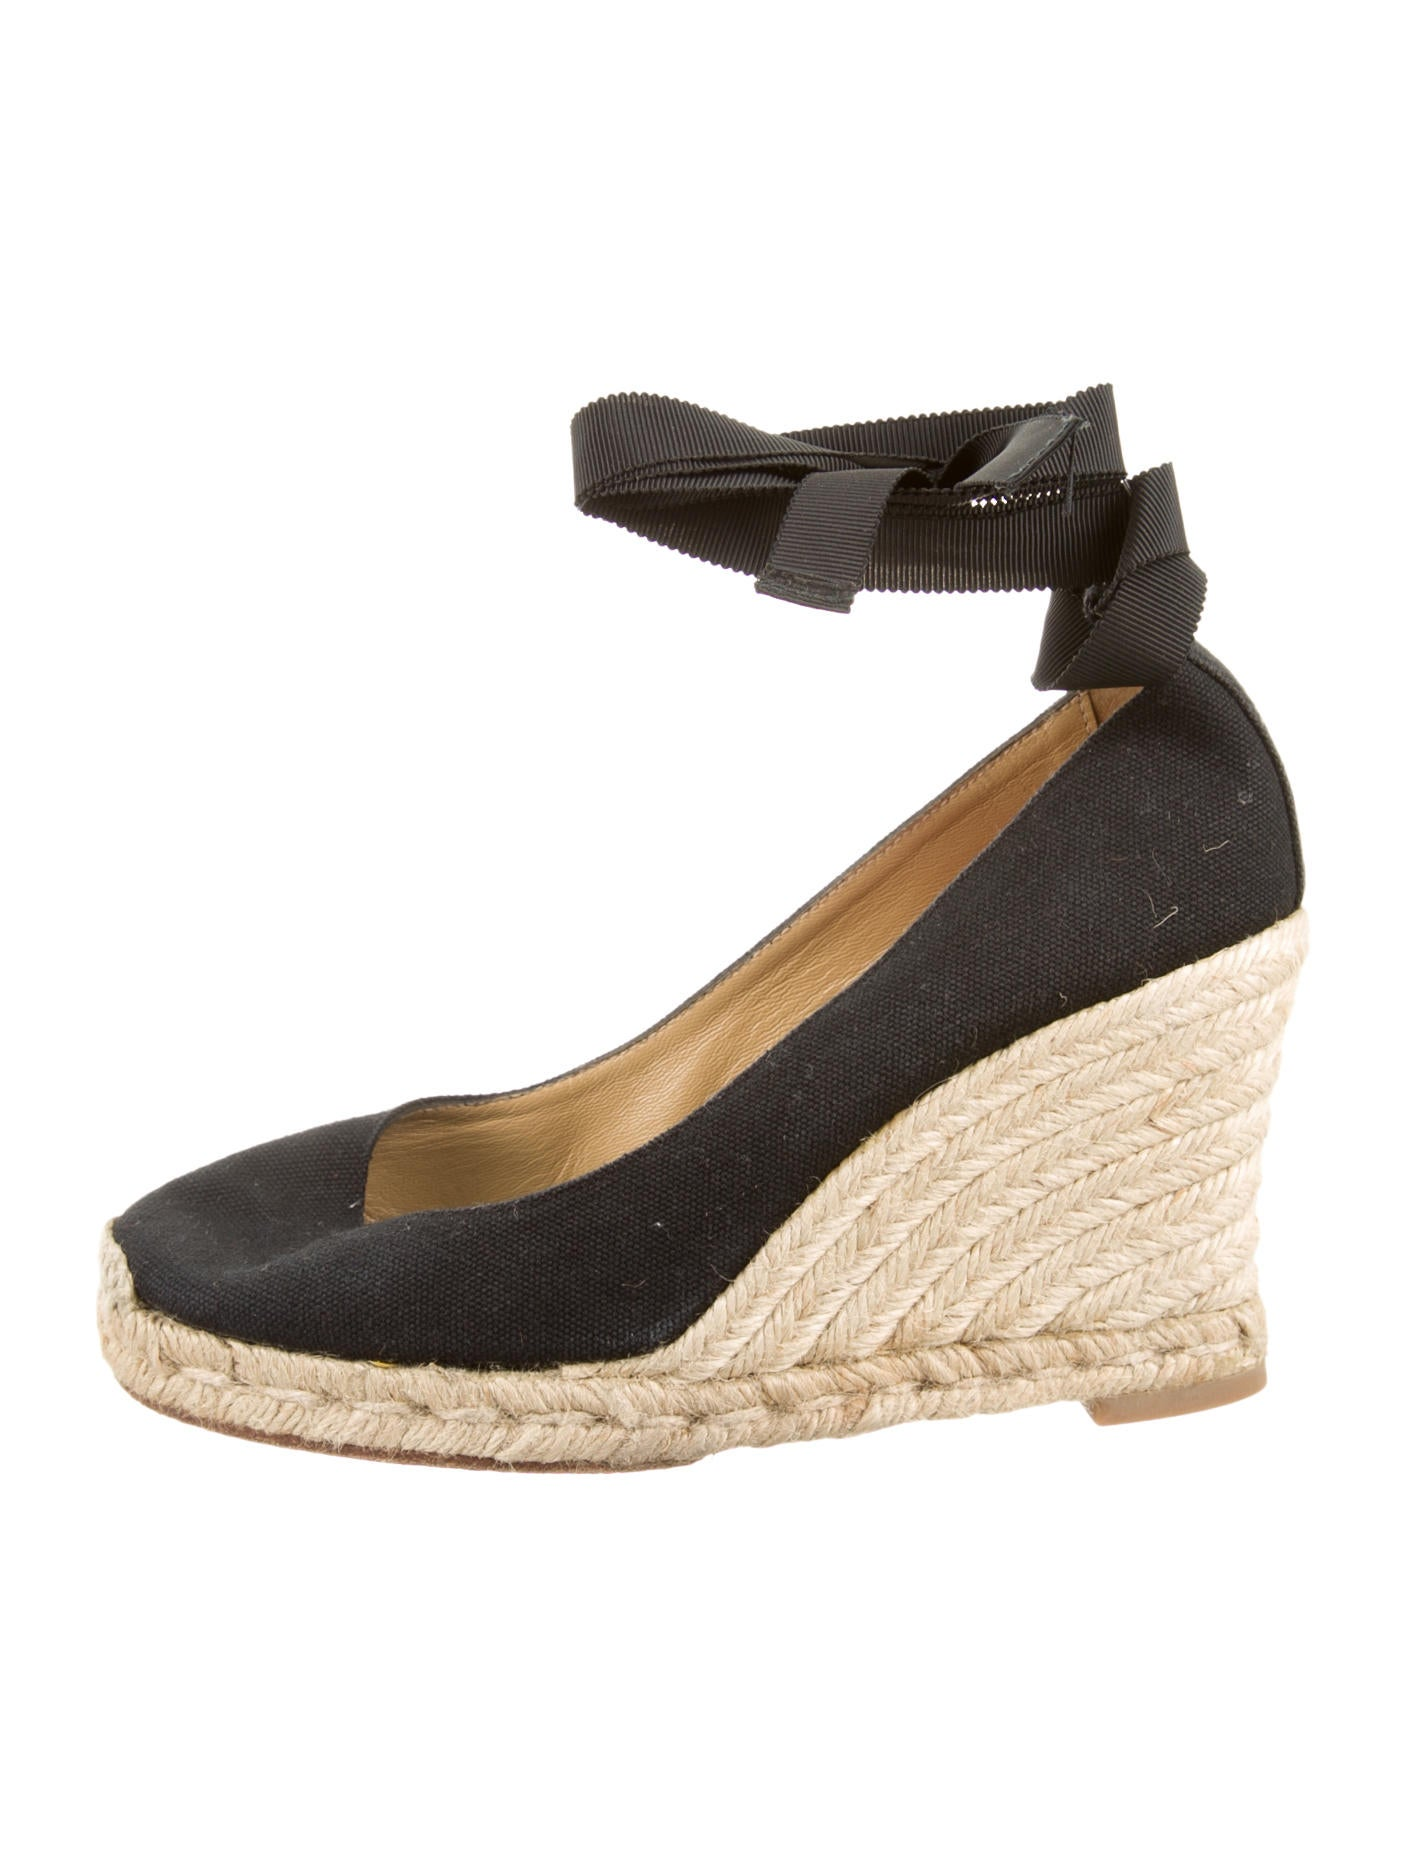 christian louboutin satin espadrille wedges Black round toes | The ...